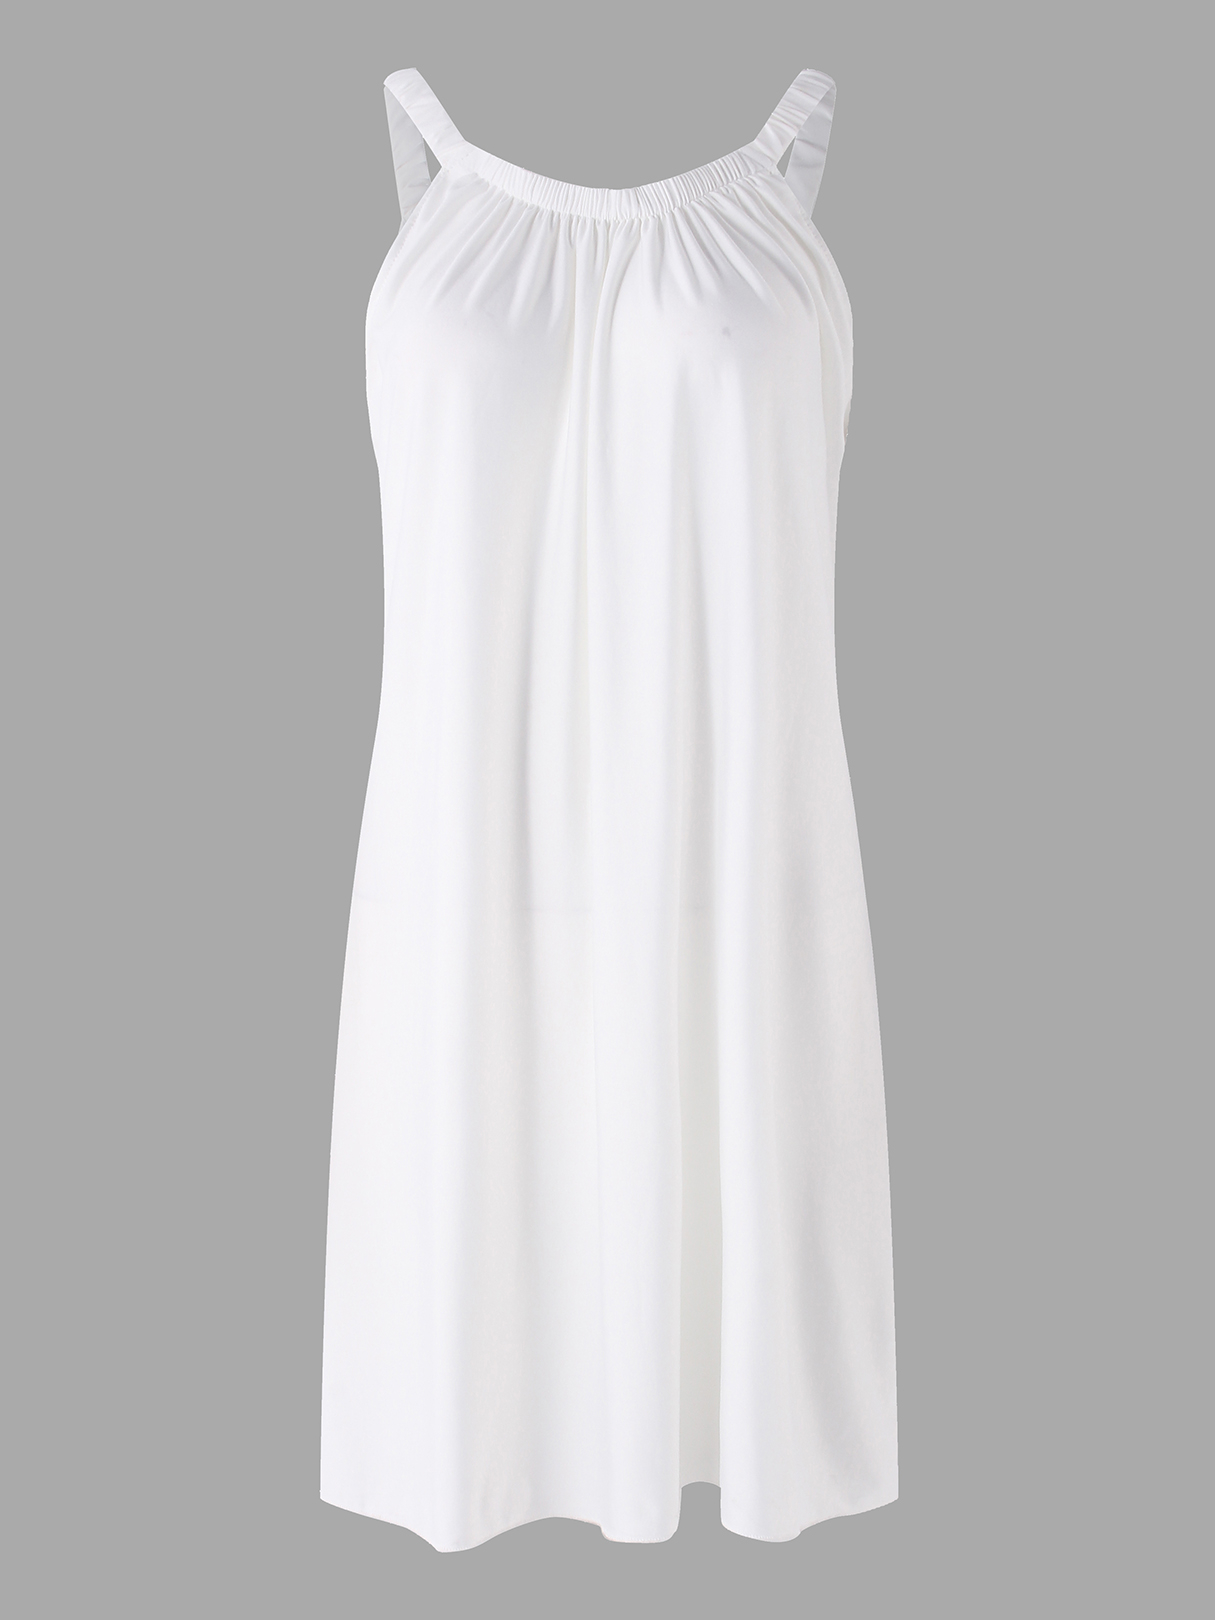 White Spaghetti Plain Round Neck Sleeveless Mini Dress white casual round neck ruffled dress